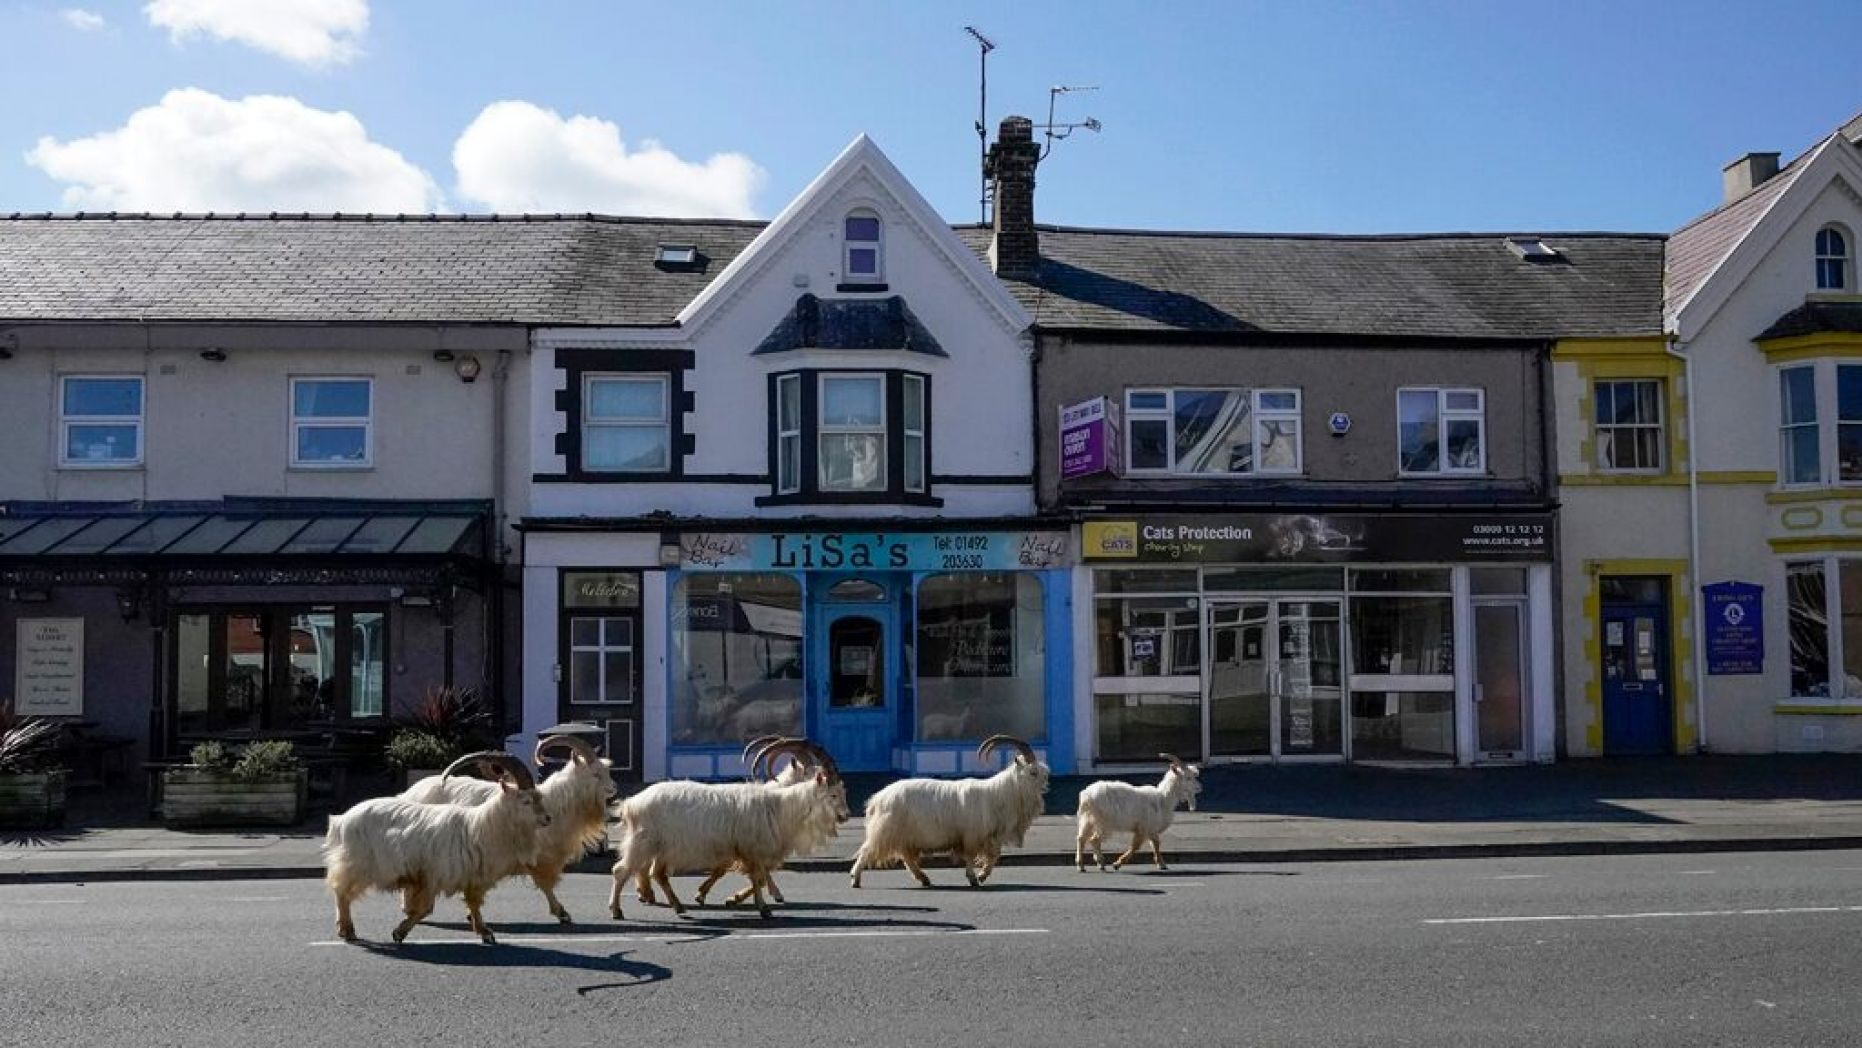 goats-Wales-Getty-Images.jpg